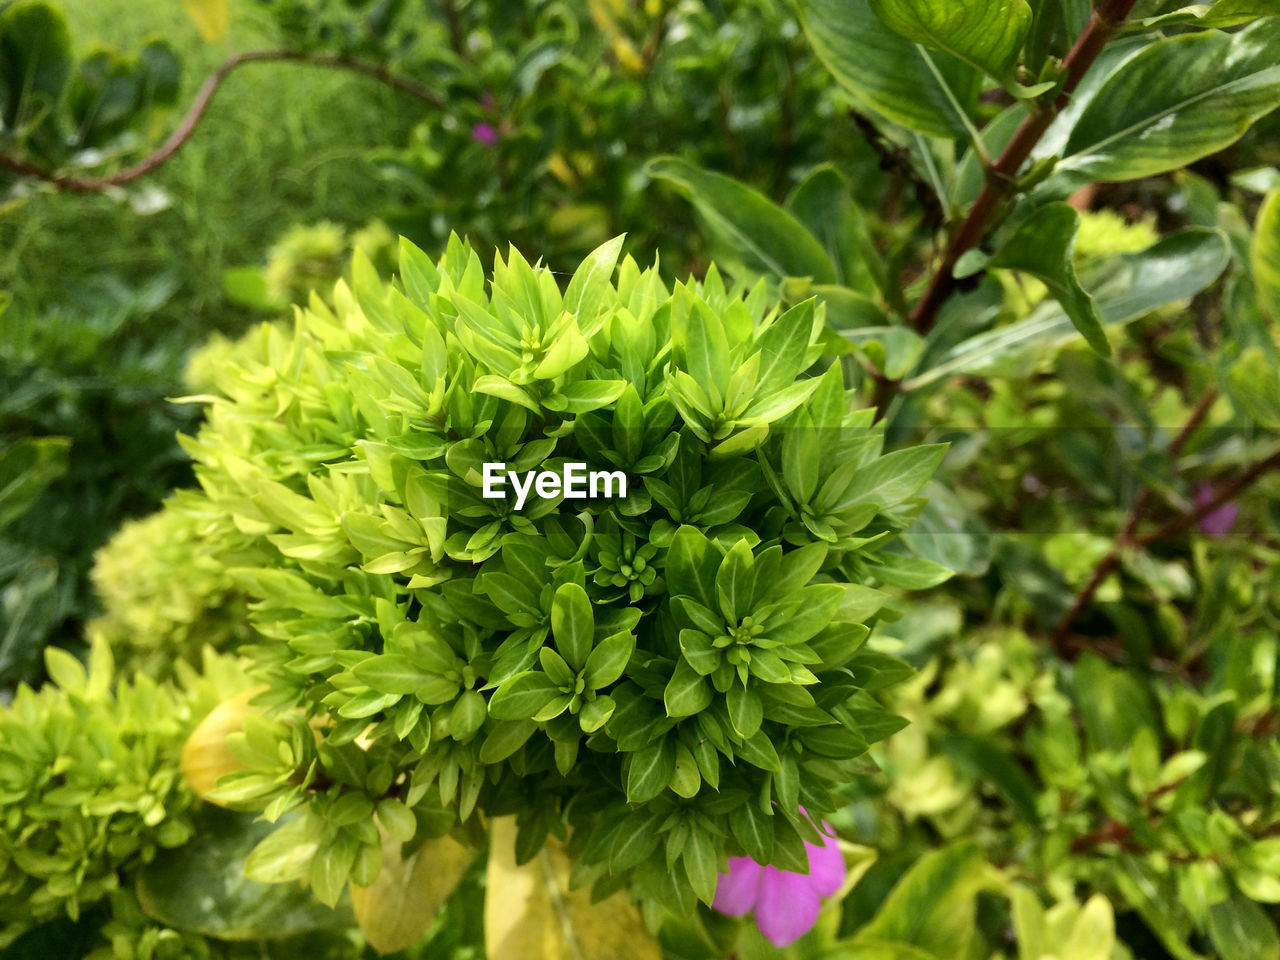 plant, growth, green color, beauty in nature, plant part, leaf, close-up, nature, focus on foreground, day, flower, no people, freshness, flowering plant, outdoors, fragility, vulnerability, tranquility, park, selective focus, herb, leaves